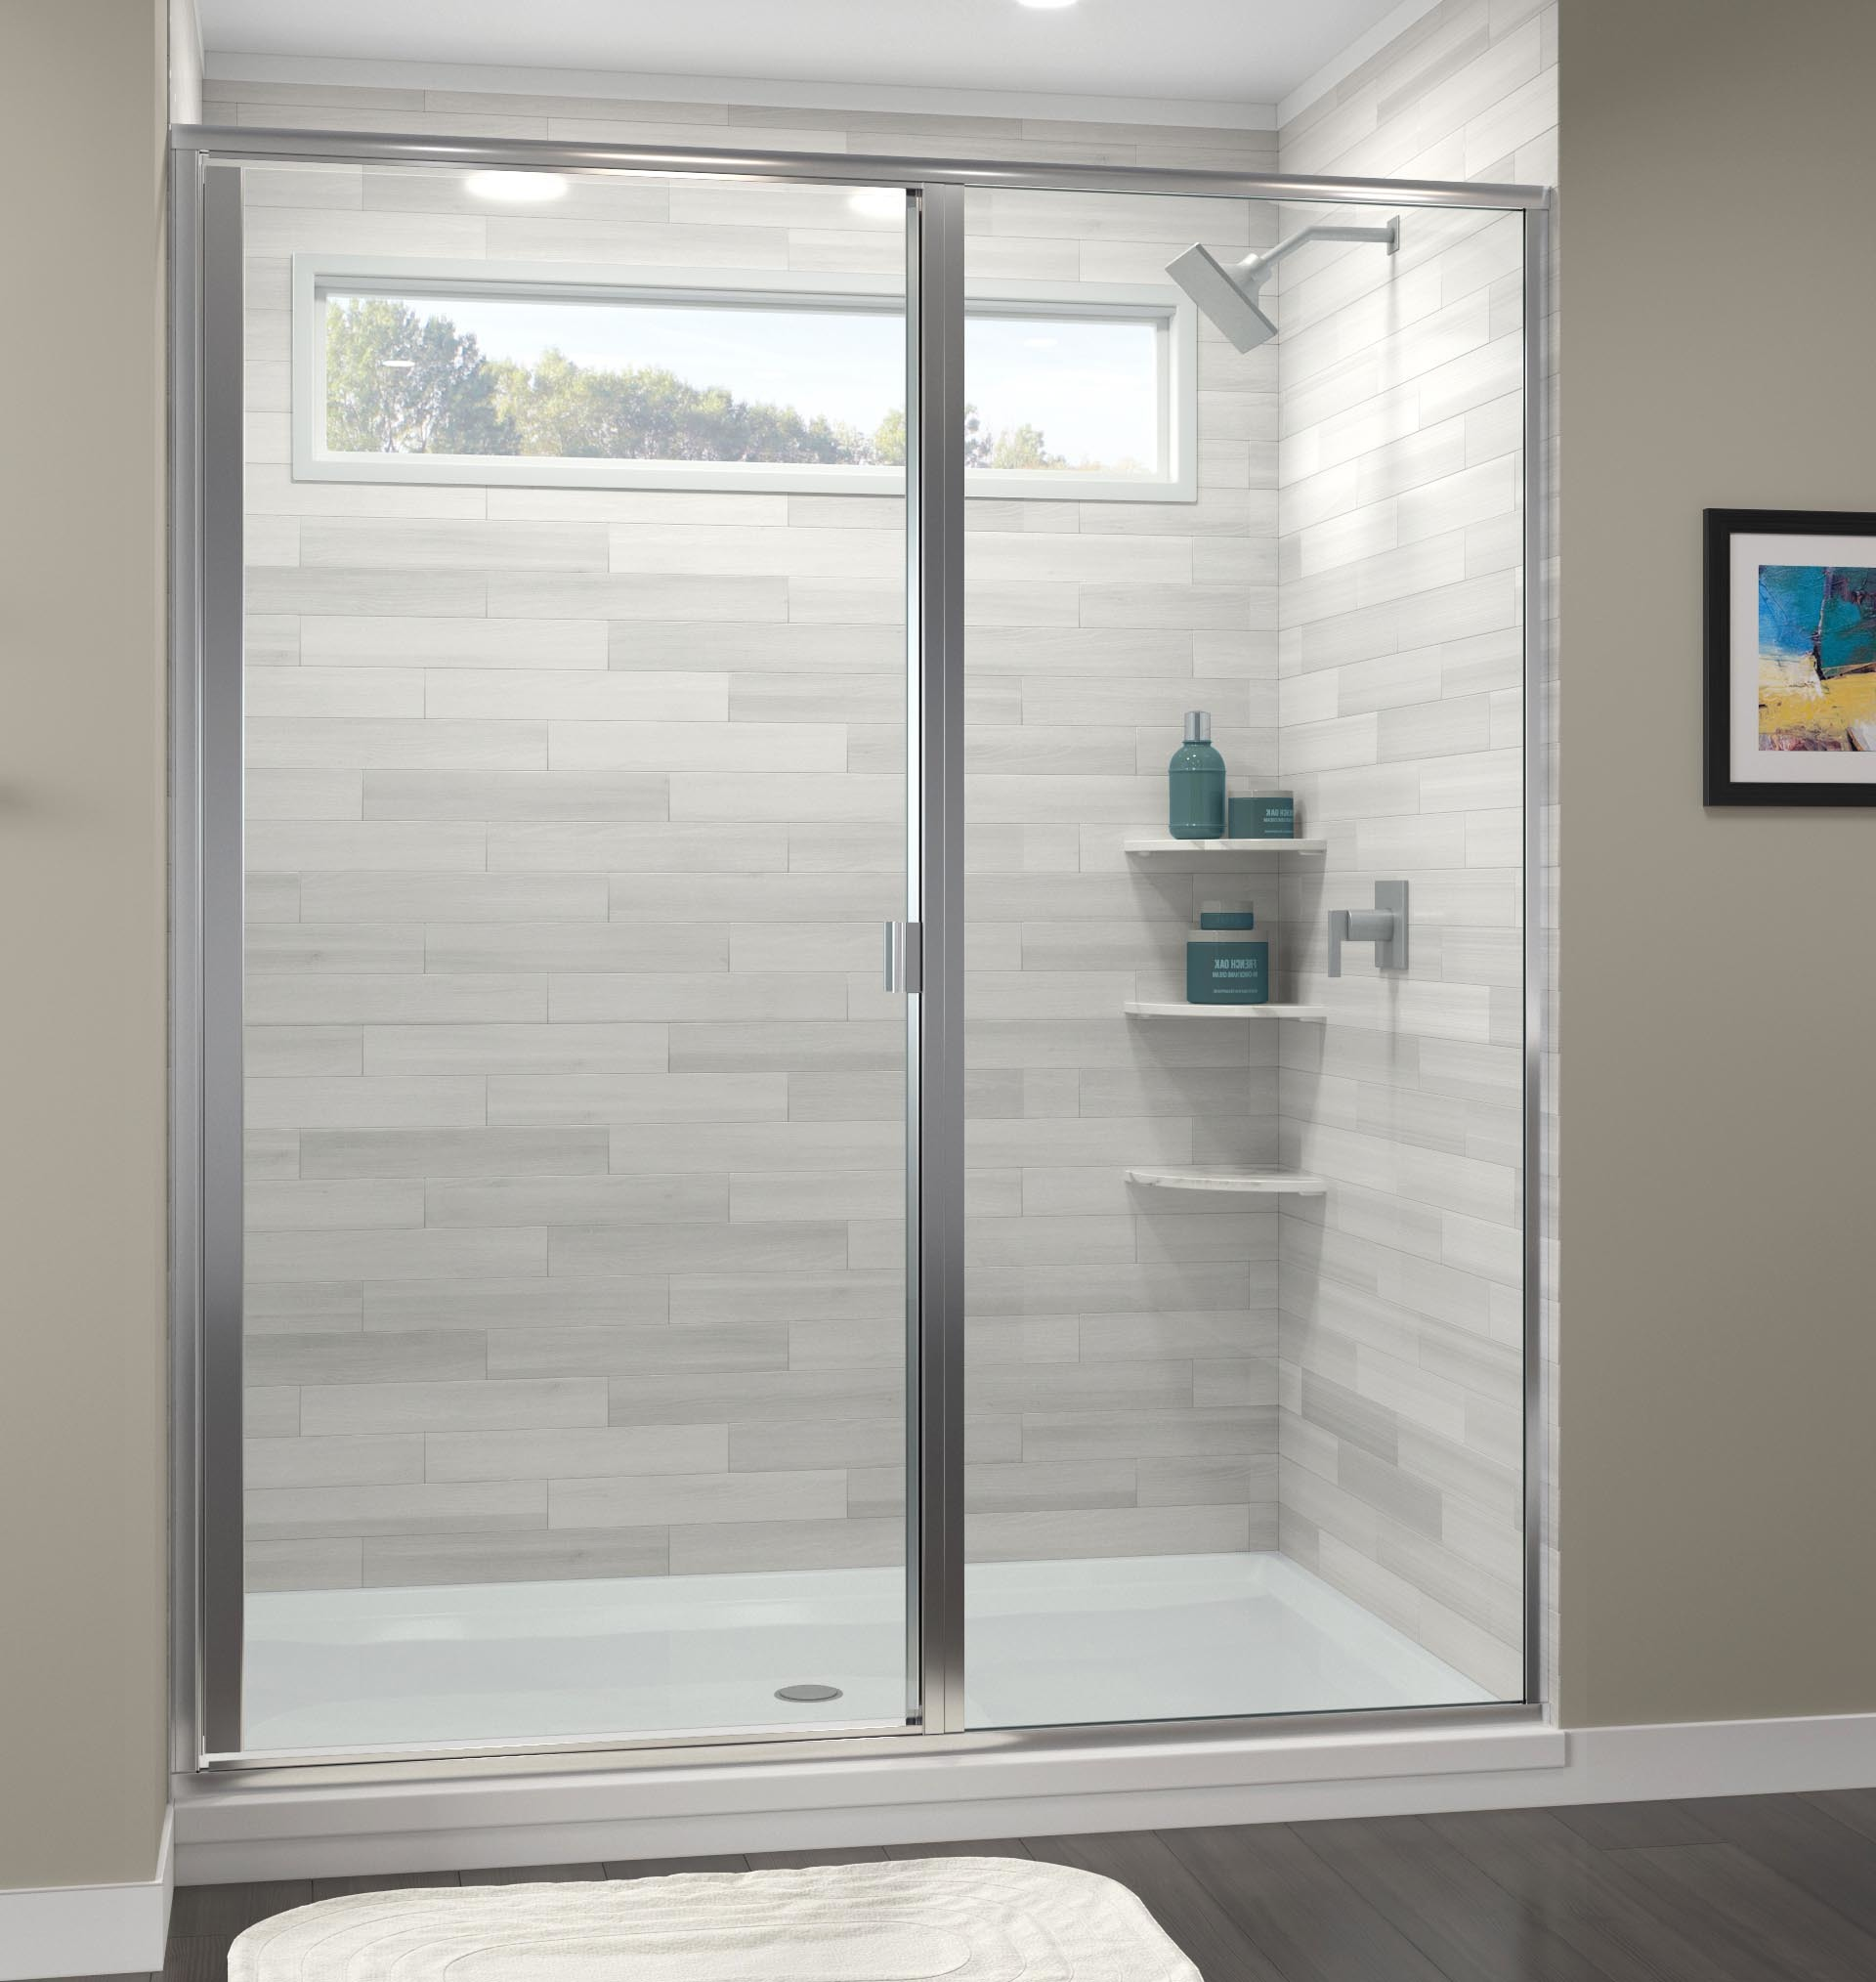 Classic Semi-Frameless 3/16-inch Glass Swing Door | Basco Shower Doors